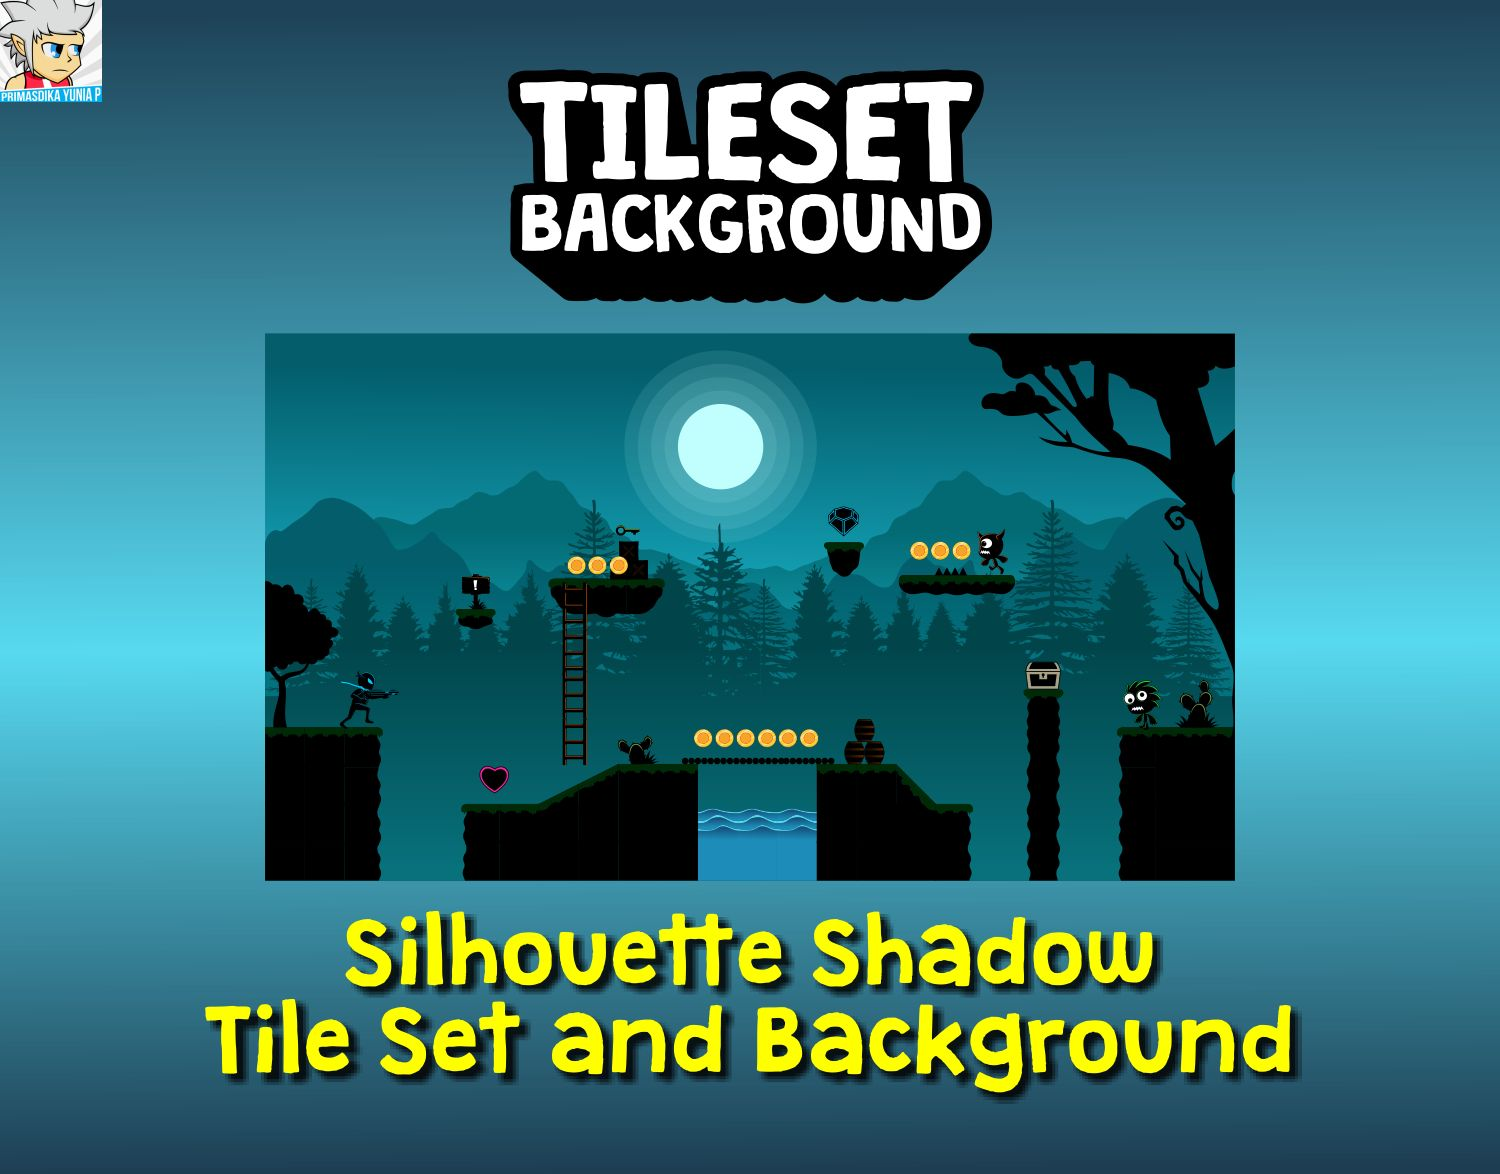 Silhouette Shadow Tileset and Background Screenshot 1